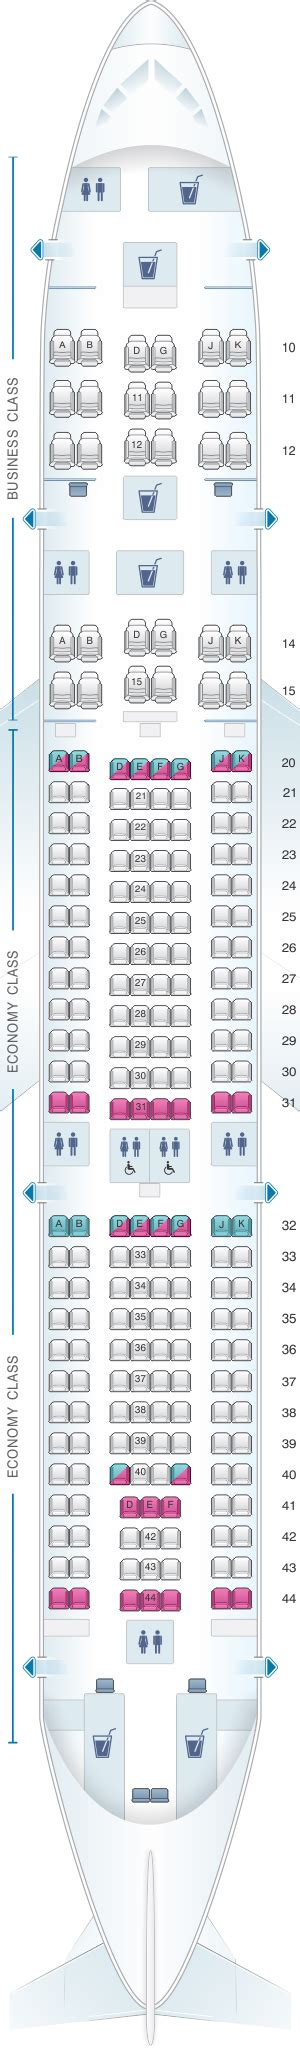 a332 seat map seat map oman air airbus a330 200 seatmaestro